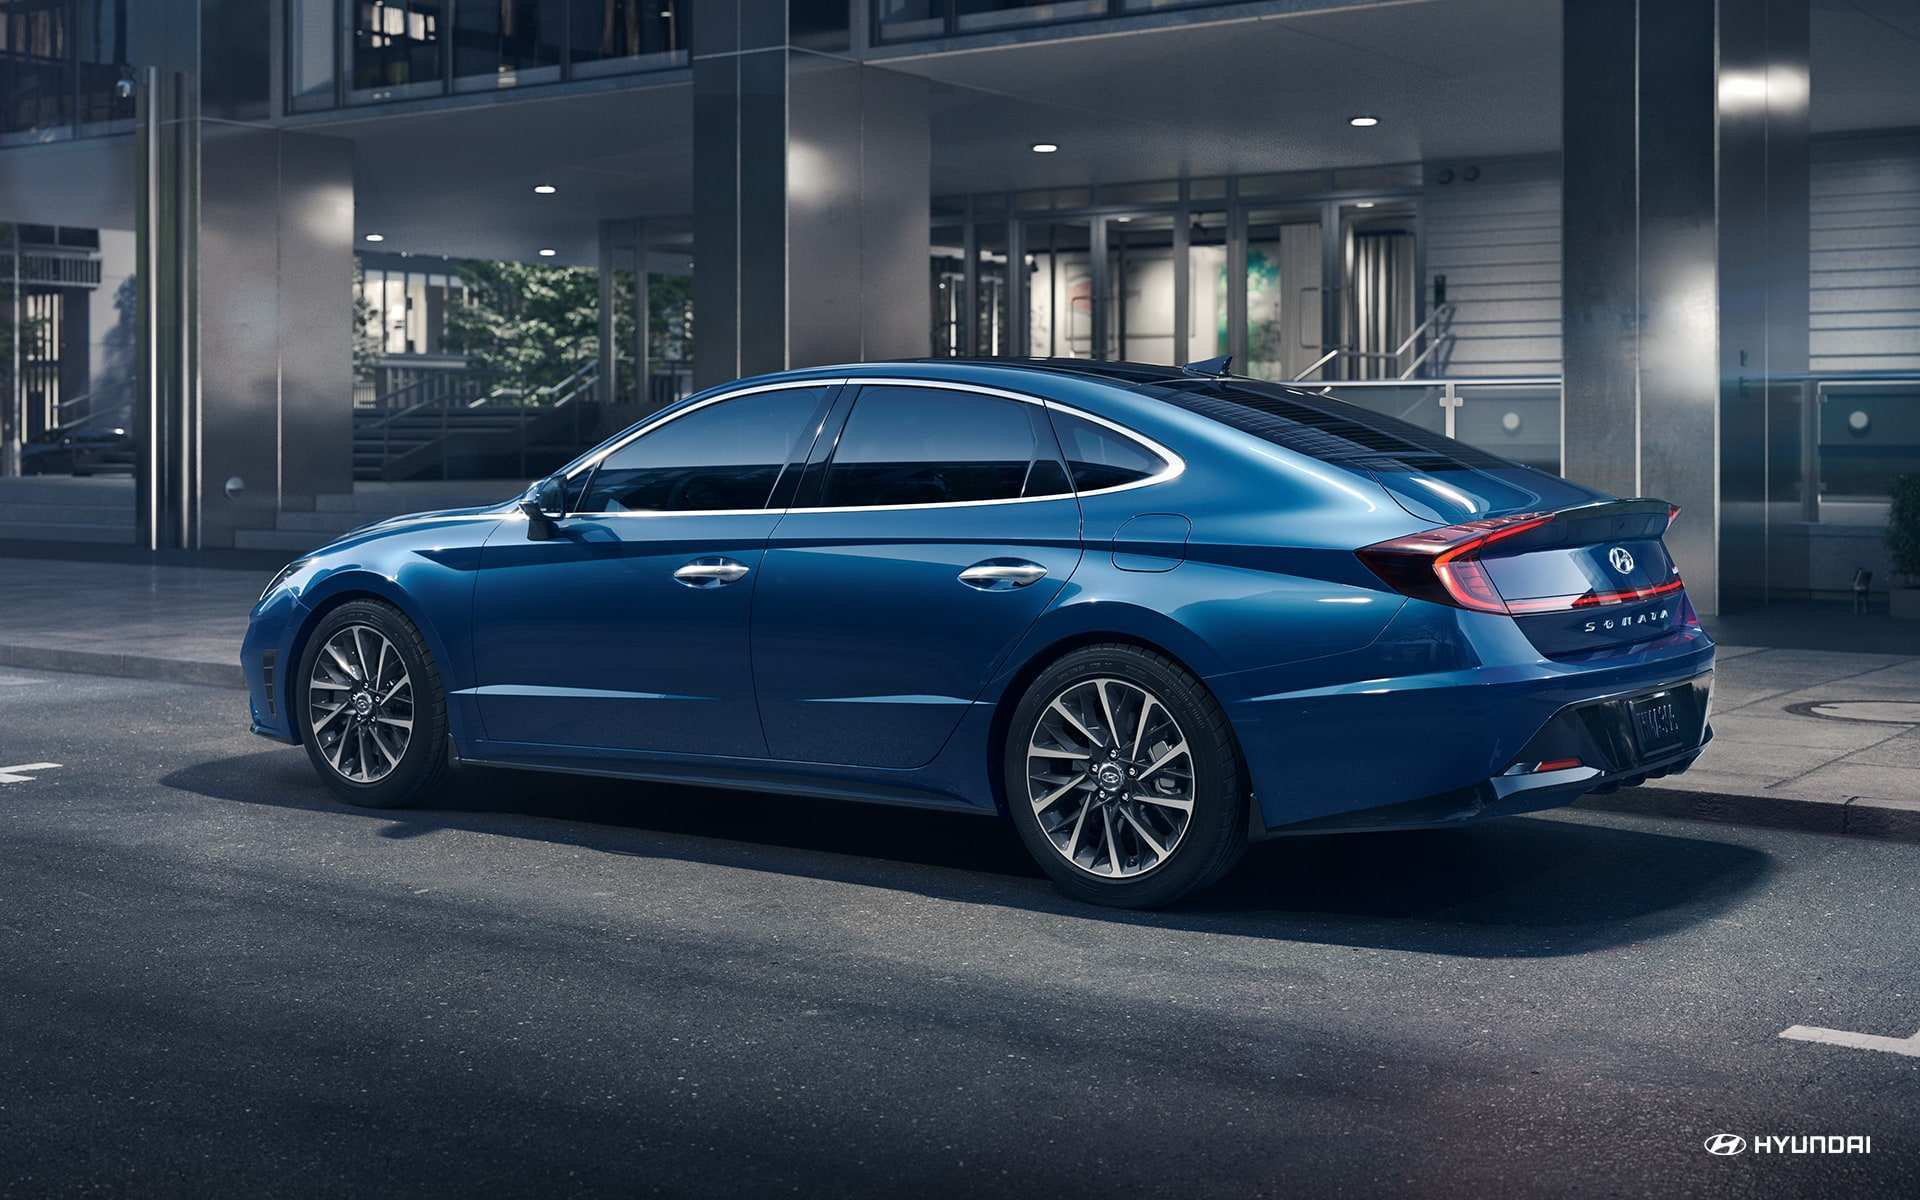 53 All New When Will The 2020 Hyundai Sonata Be Available Performance for When Will The 2020 Hyundai Sonata Be Available